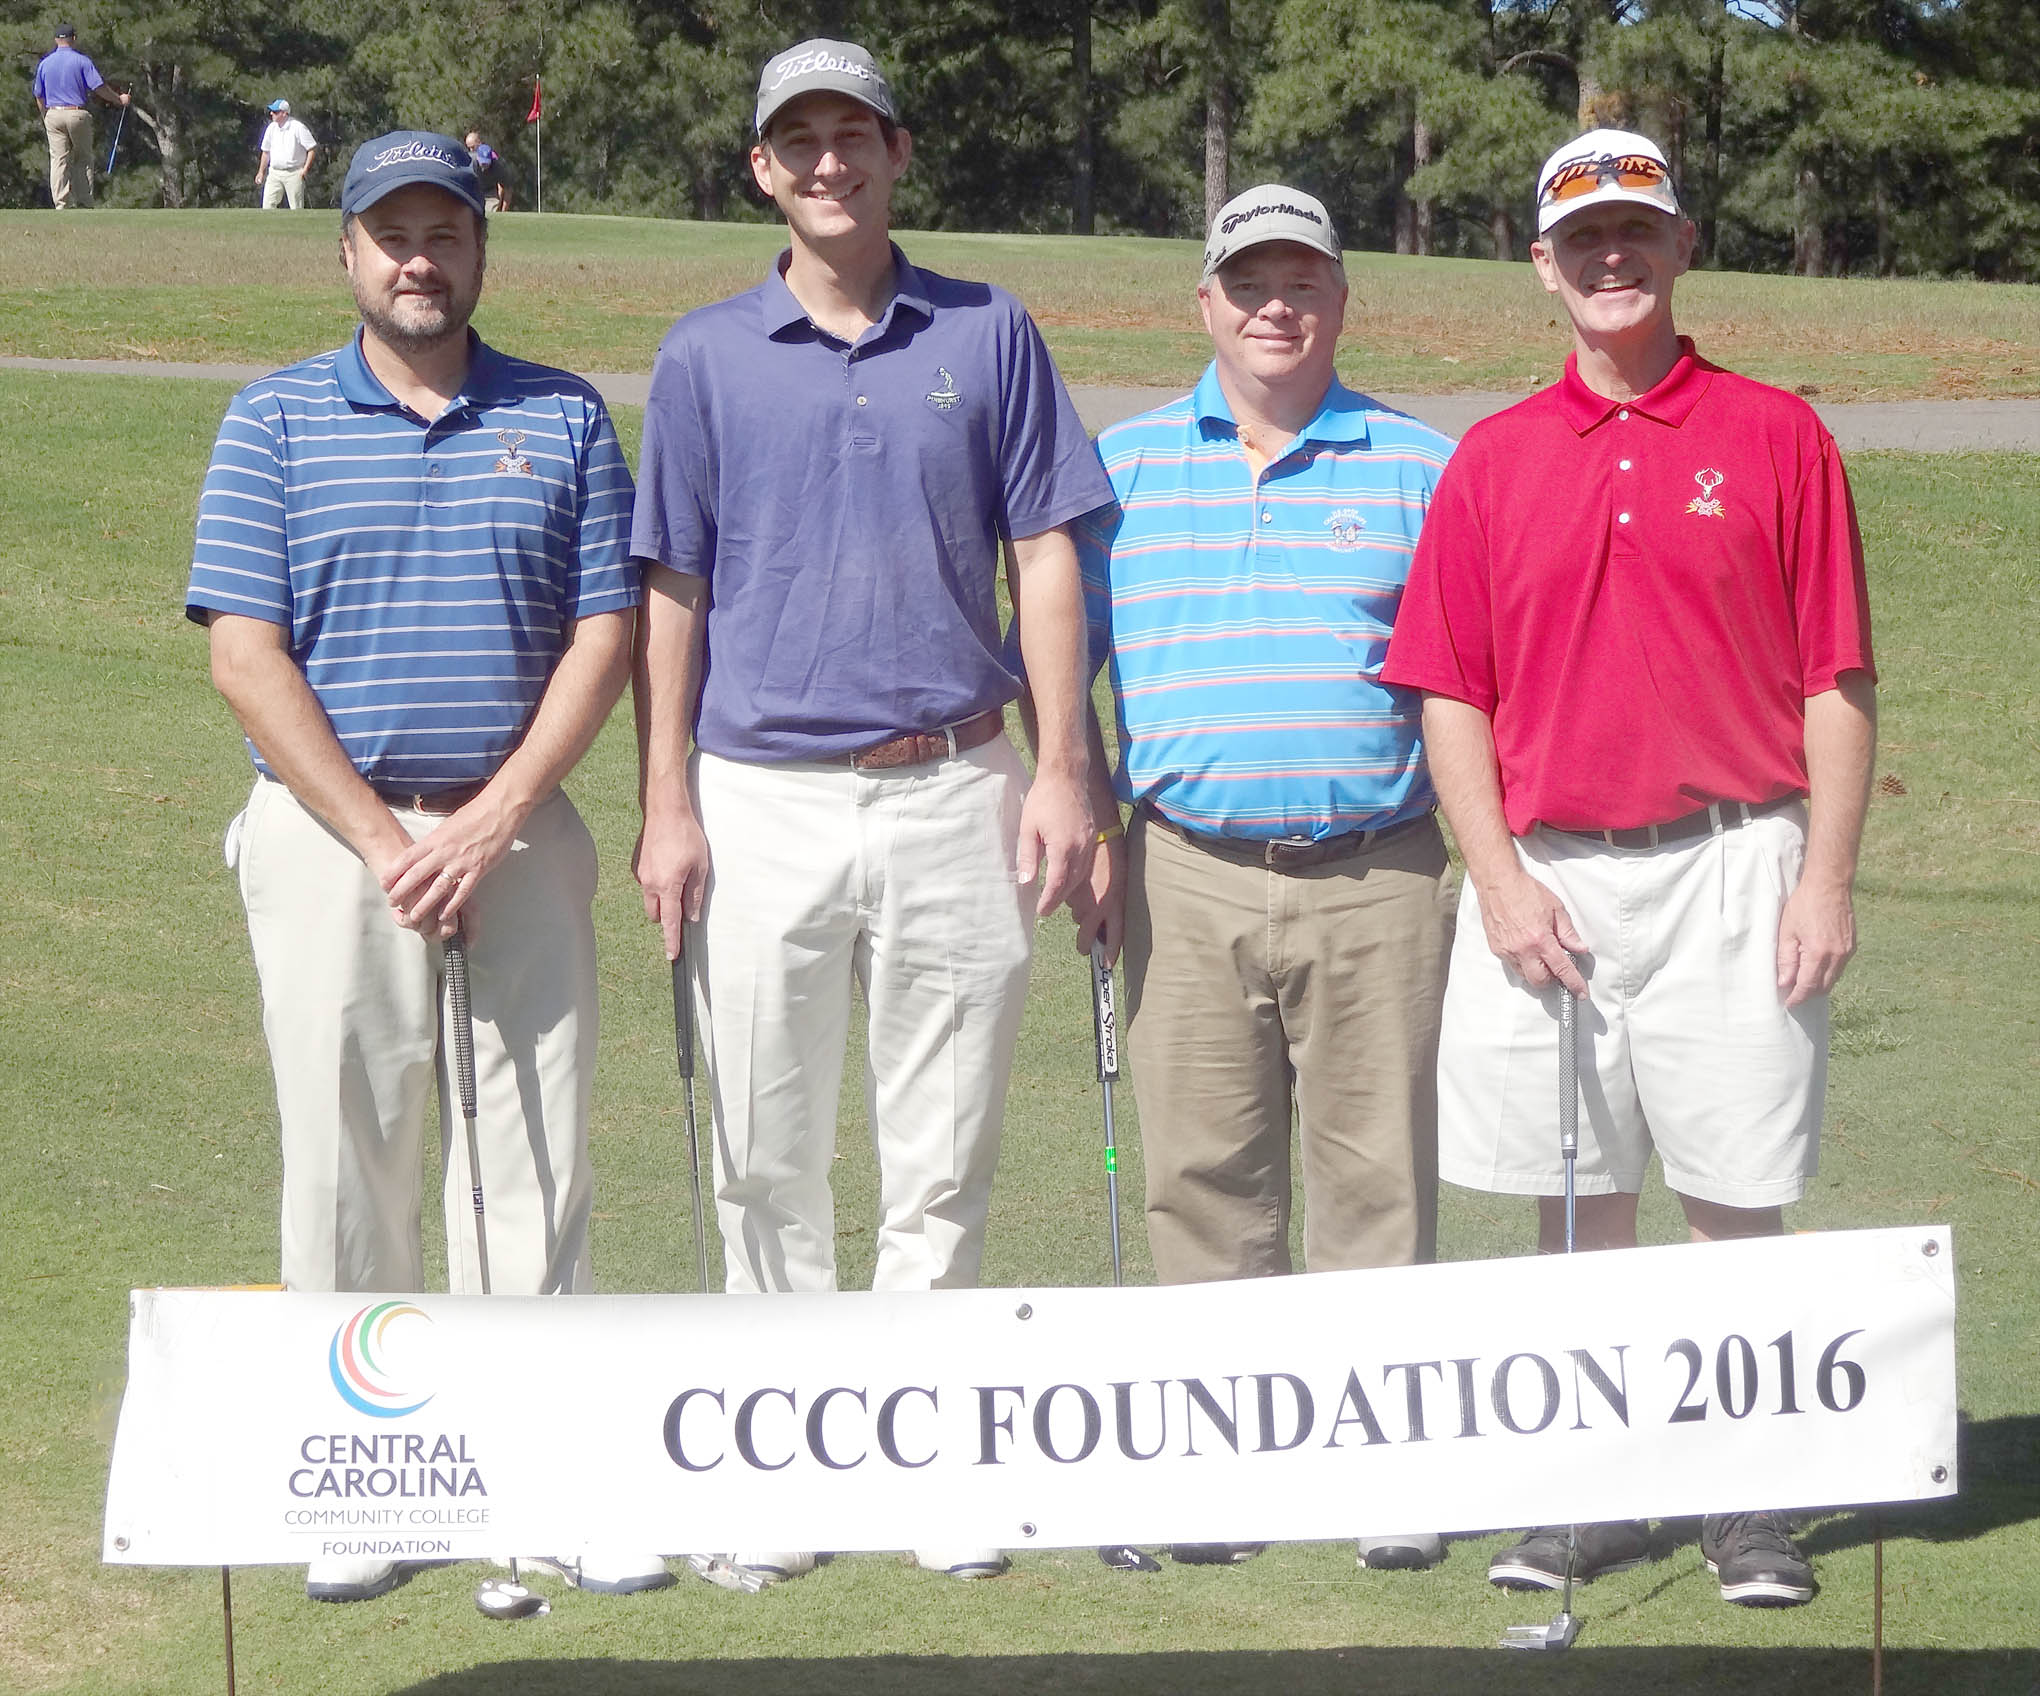 Click to enlarge,  The team of Alan Holt, Bill Kwasnick, Ron Minter, and Tom McSwain won the second flight of the morning tournament of the CCCC Foundation Lee Golf Classic.